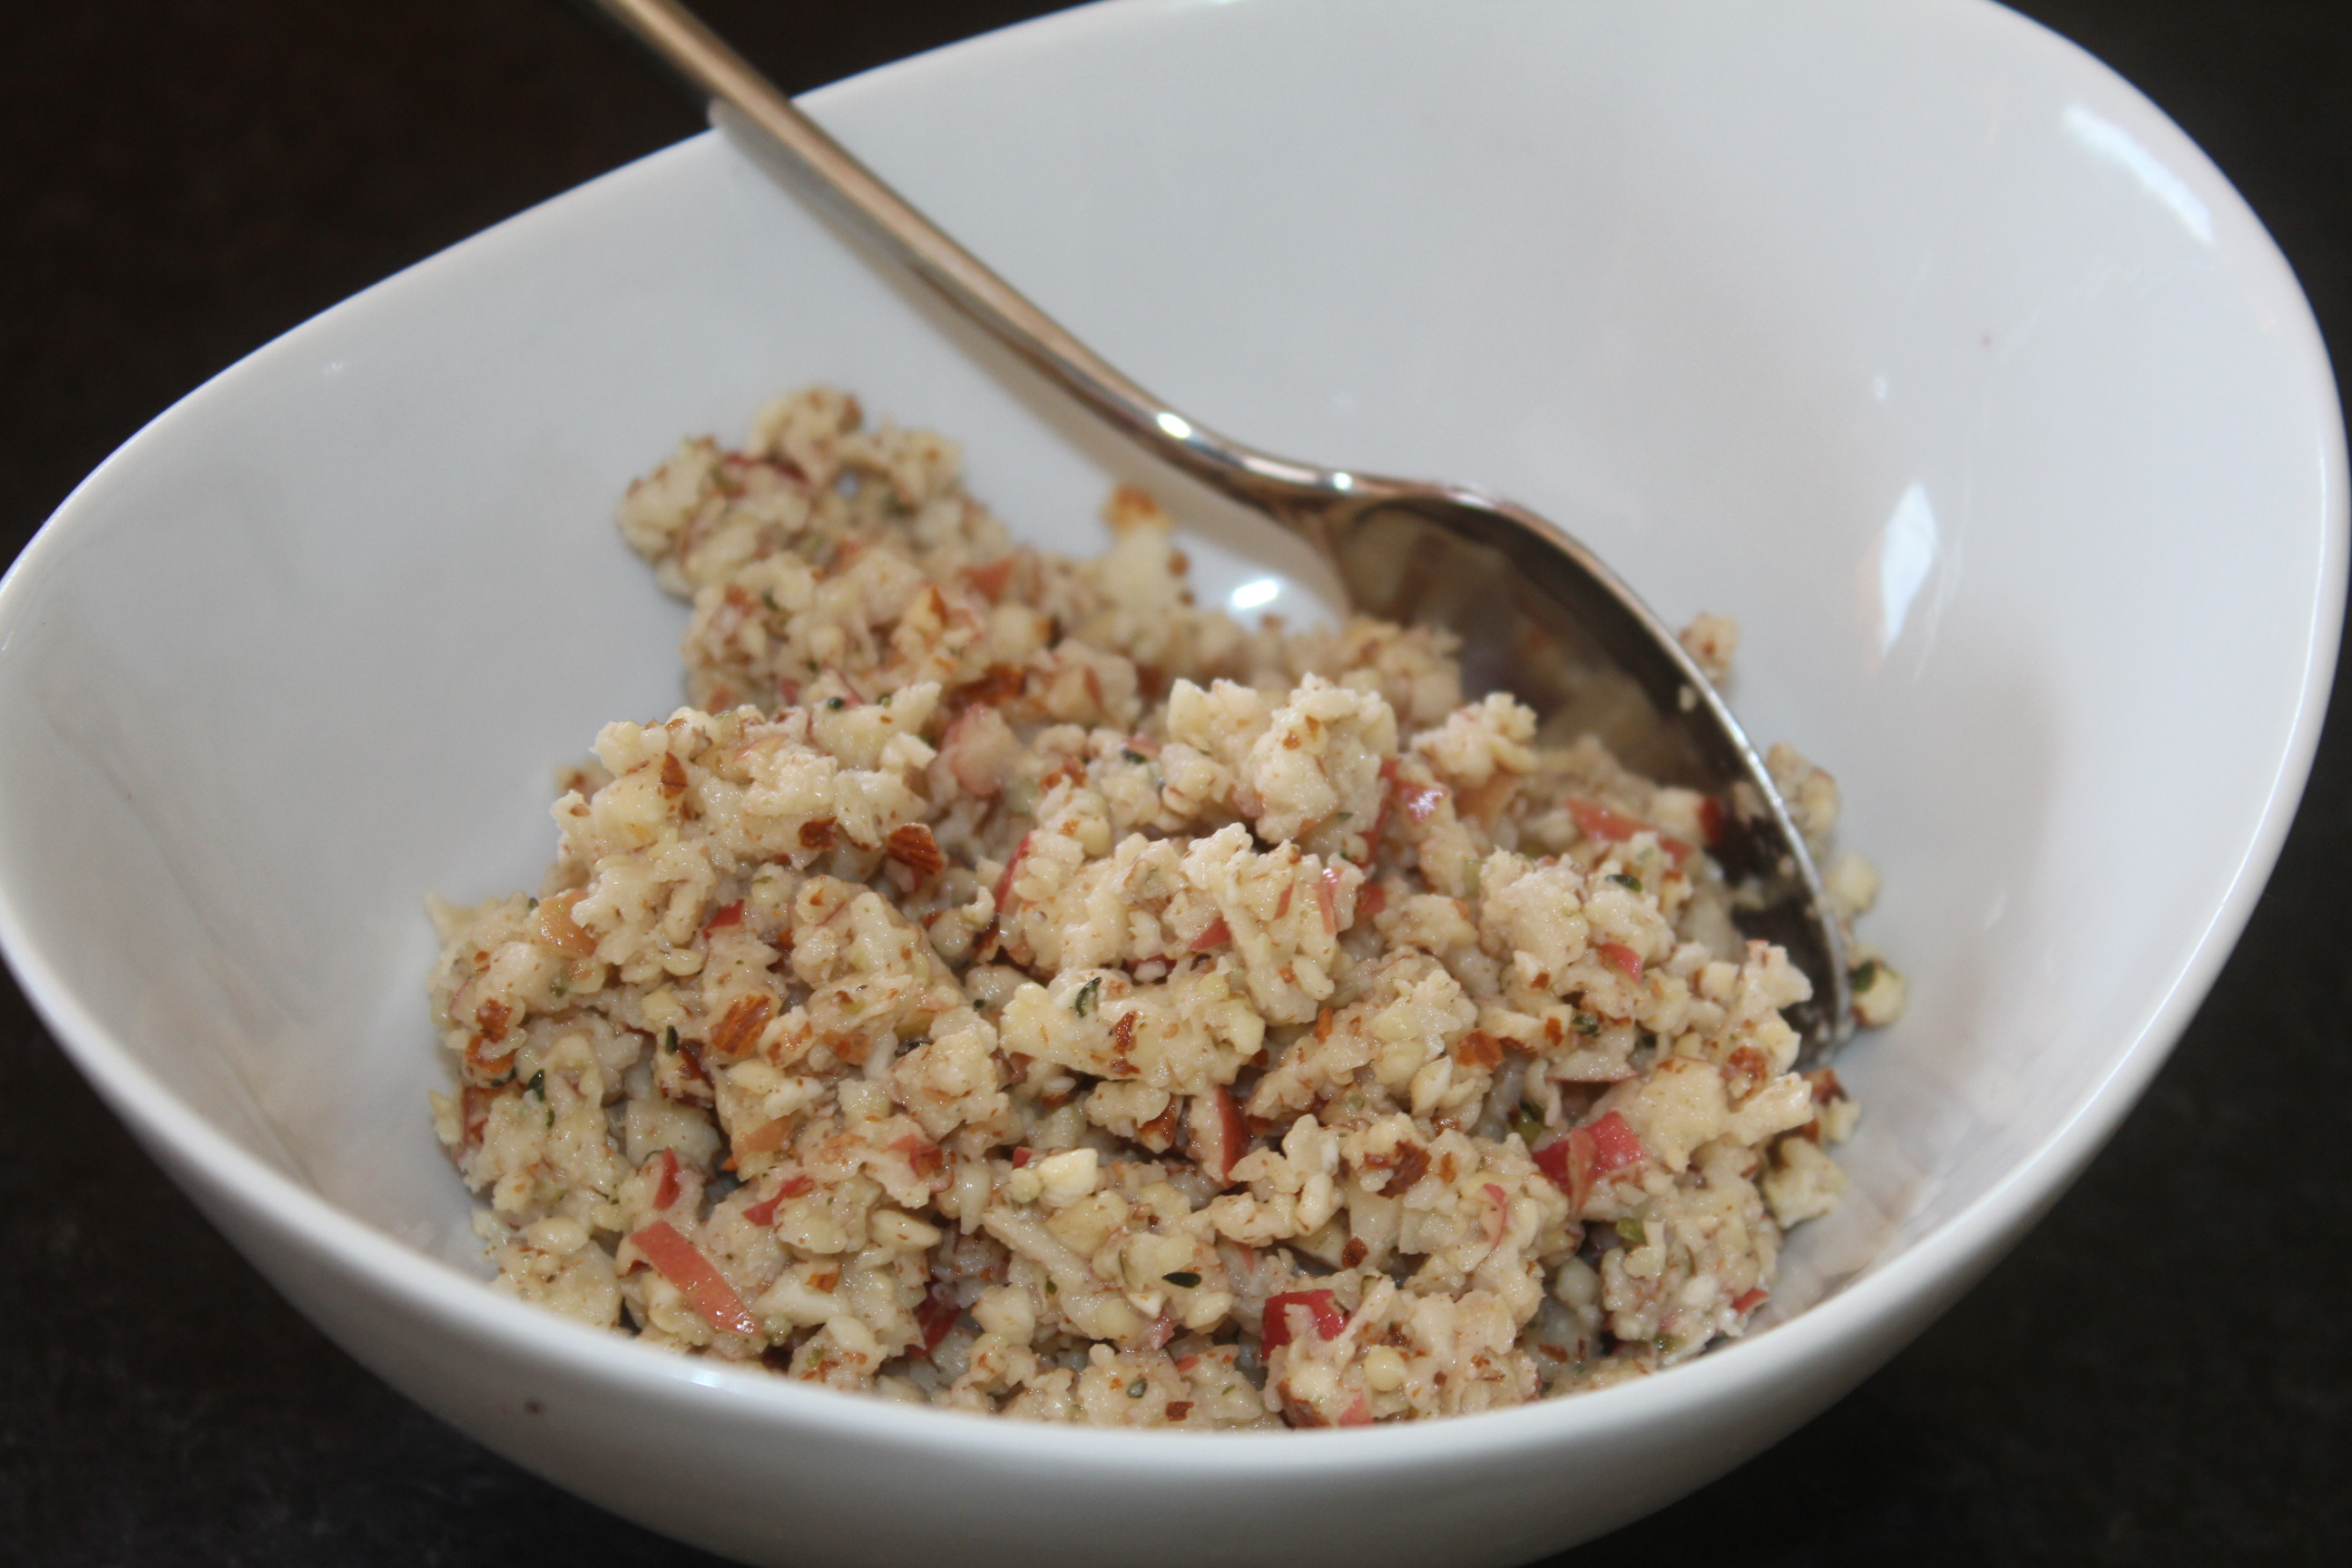 An aha moment - dish of apples, hemp seeds and almonds from CALMERme.com